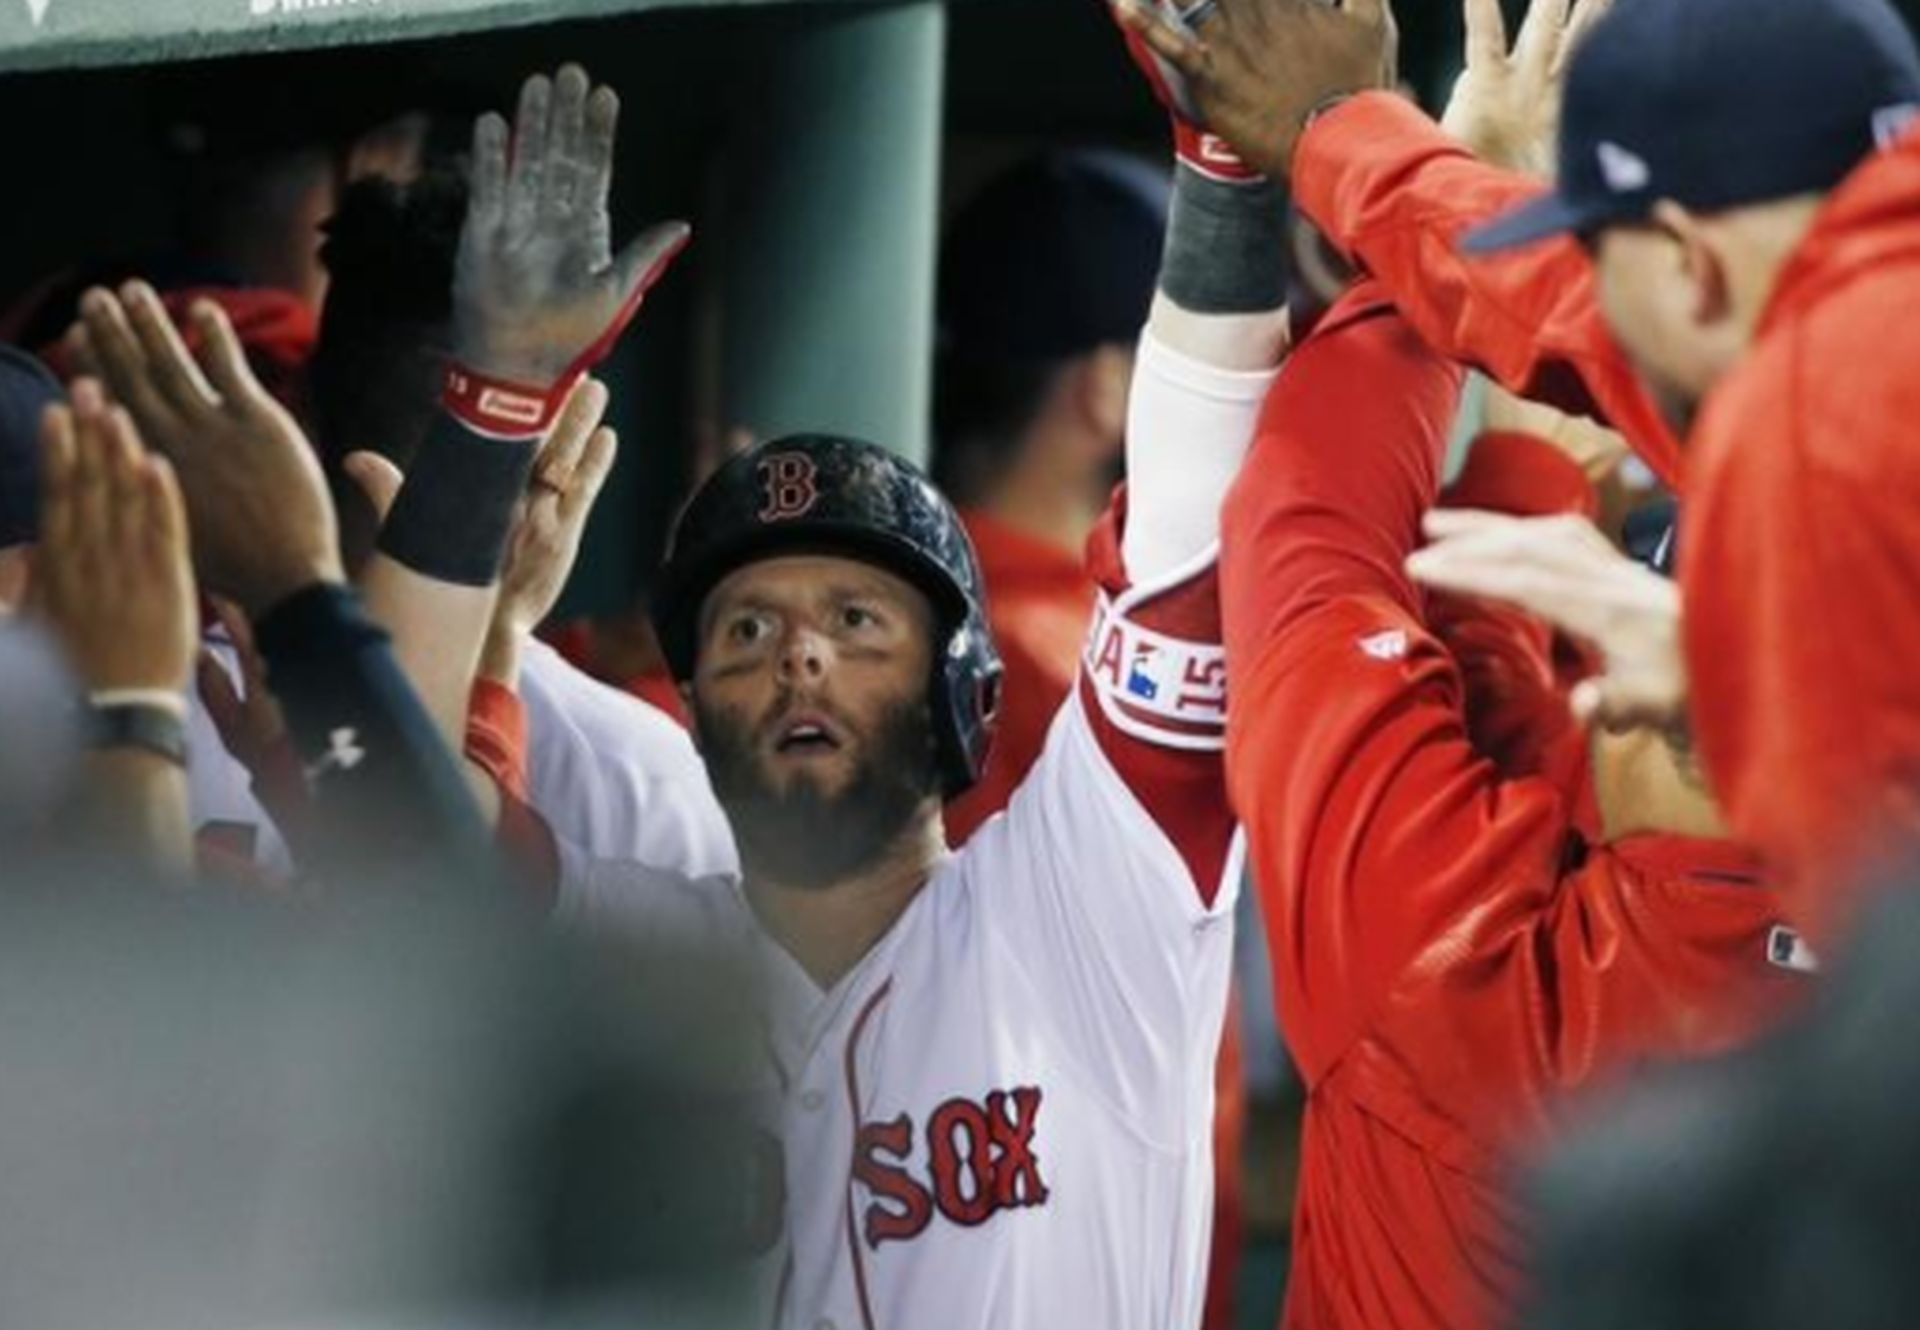 Dustin Pedroia of the Boston Red Sox celebrates his first-inning two-run home run against the Tampa Bay Rays on Saturday at Fenway Park. AP NEWSWIRE/Michael Dwyer